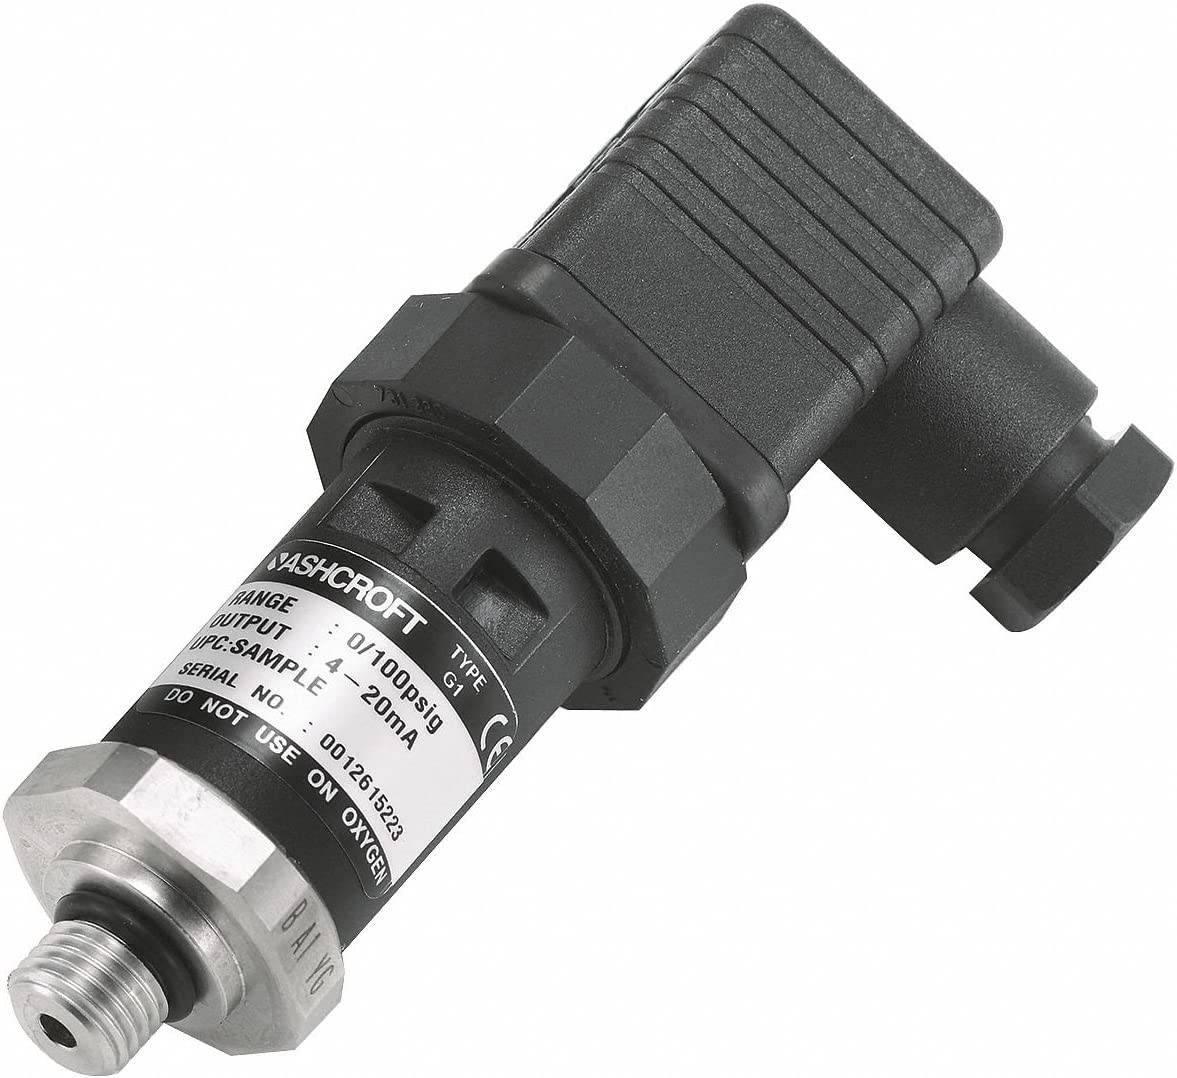 ASHCROFT 7//16-20 SAE Male Pressure Transmitter 0 to 300 psi 1 to 5VDC Output